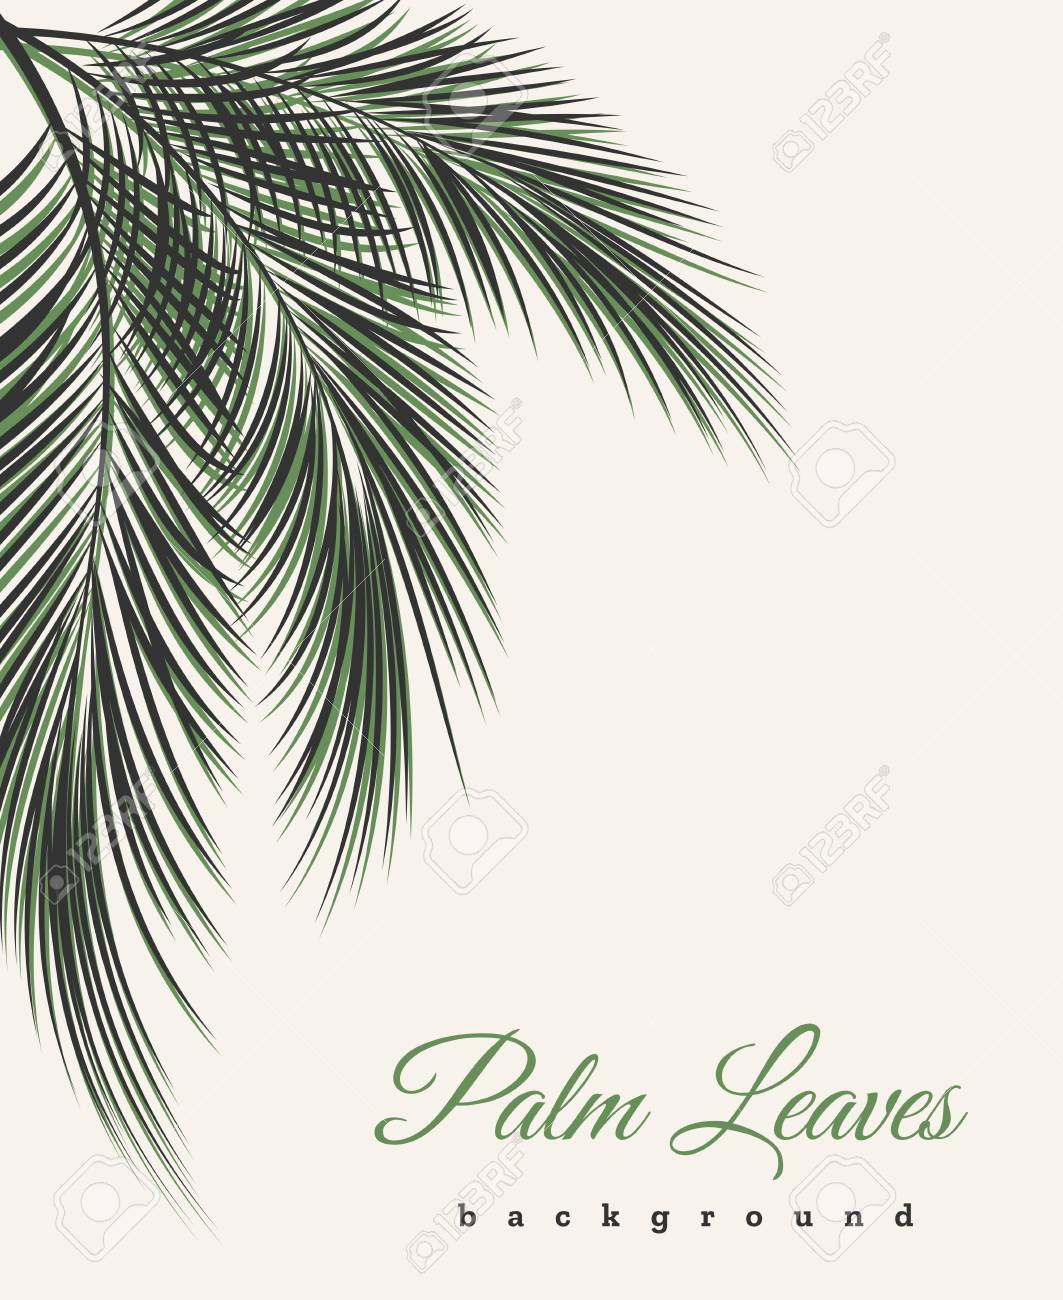 Palm Leaves Vintage Background Tree Leaf Feathers Pattern Vector African Or Brazilian Wallpaper With